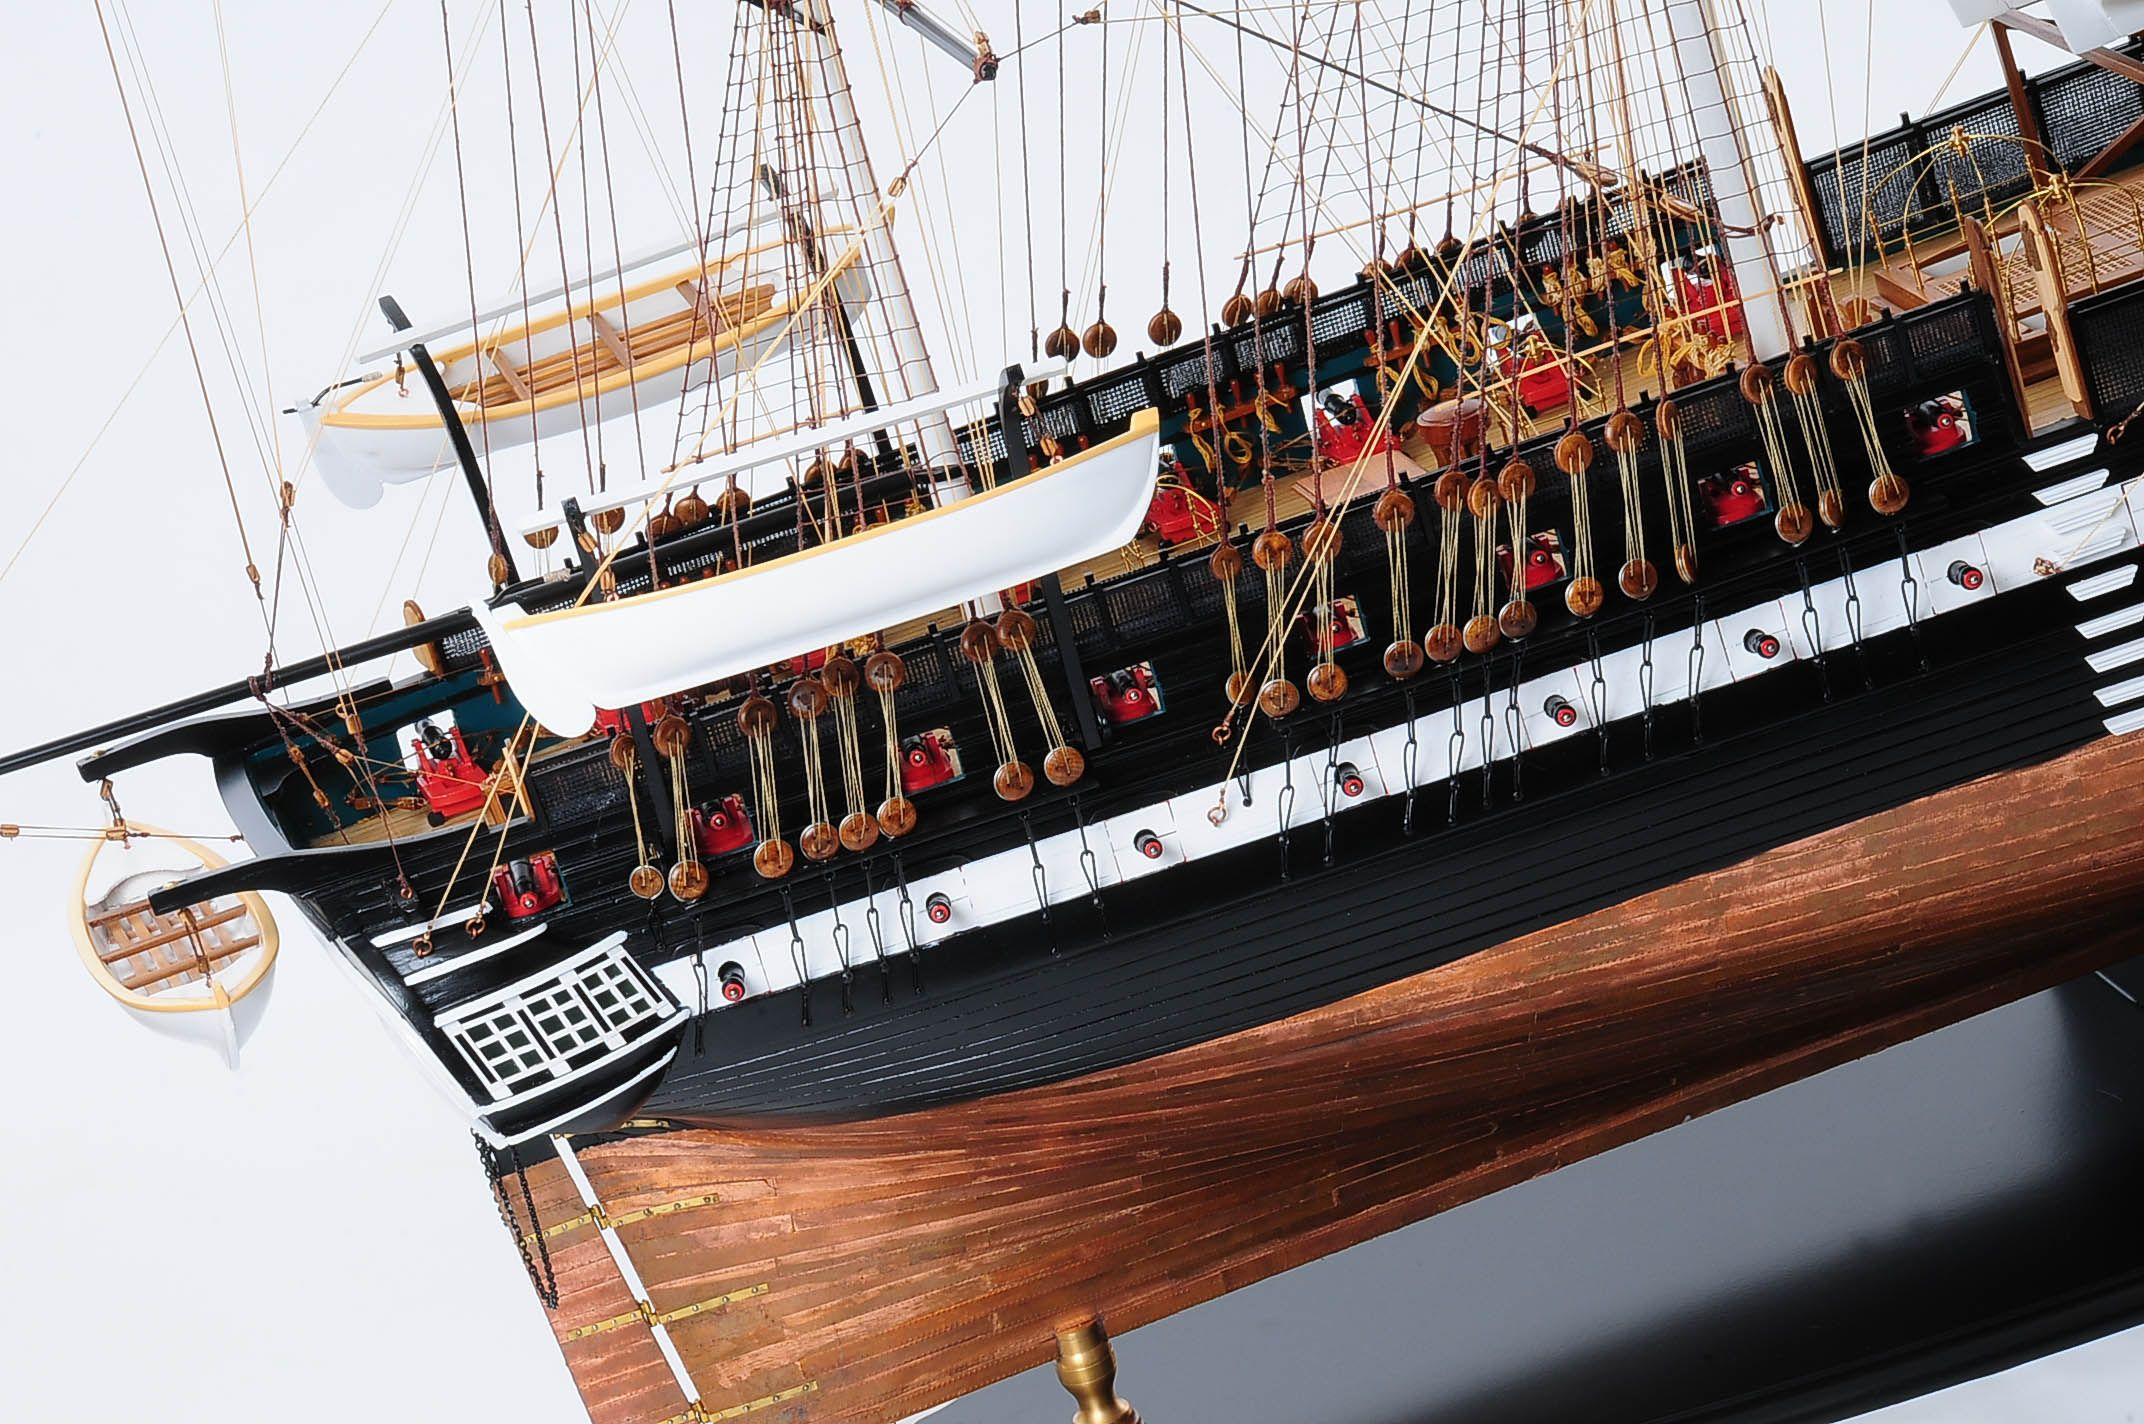 1258-7884-USS-Constitution-Model-Ship-Premier-Range